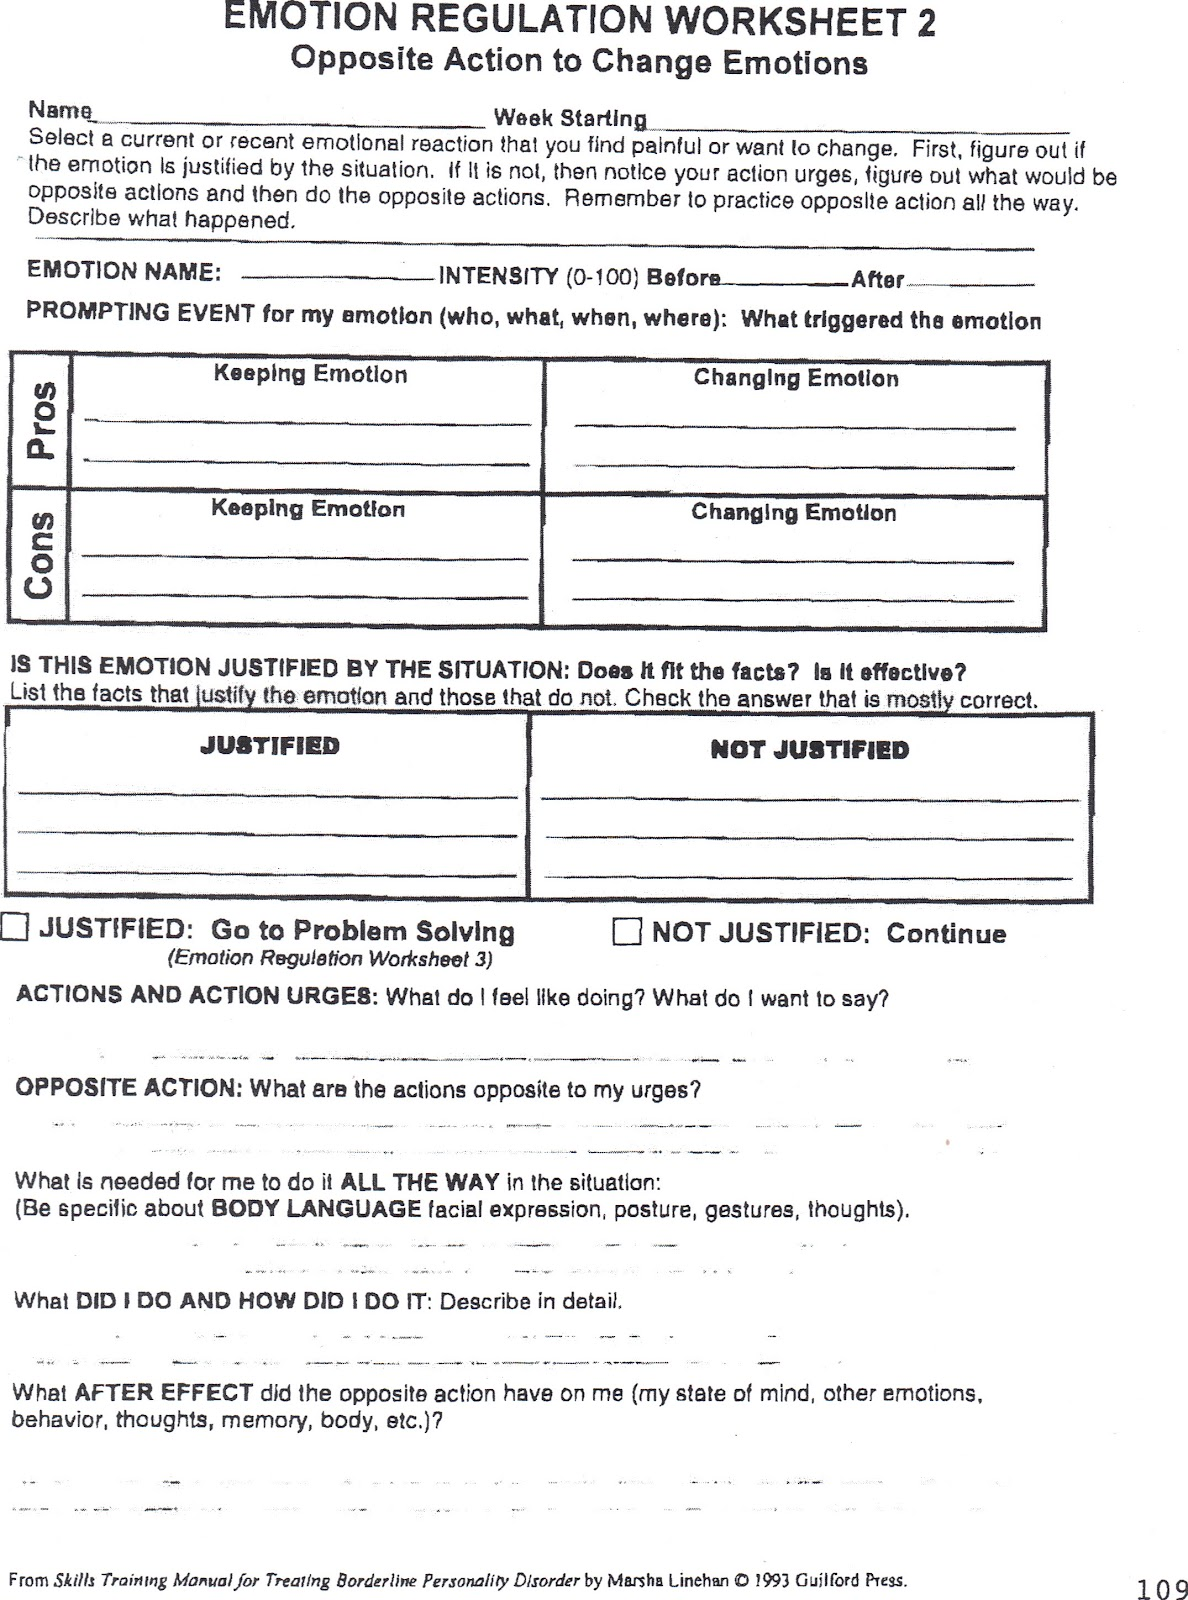 Radical Forgiveness Worksheet Free Worksheets Library – Radical Worksheets